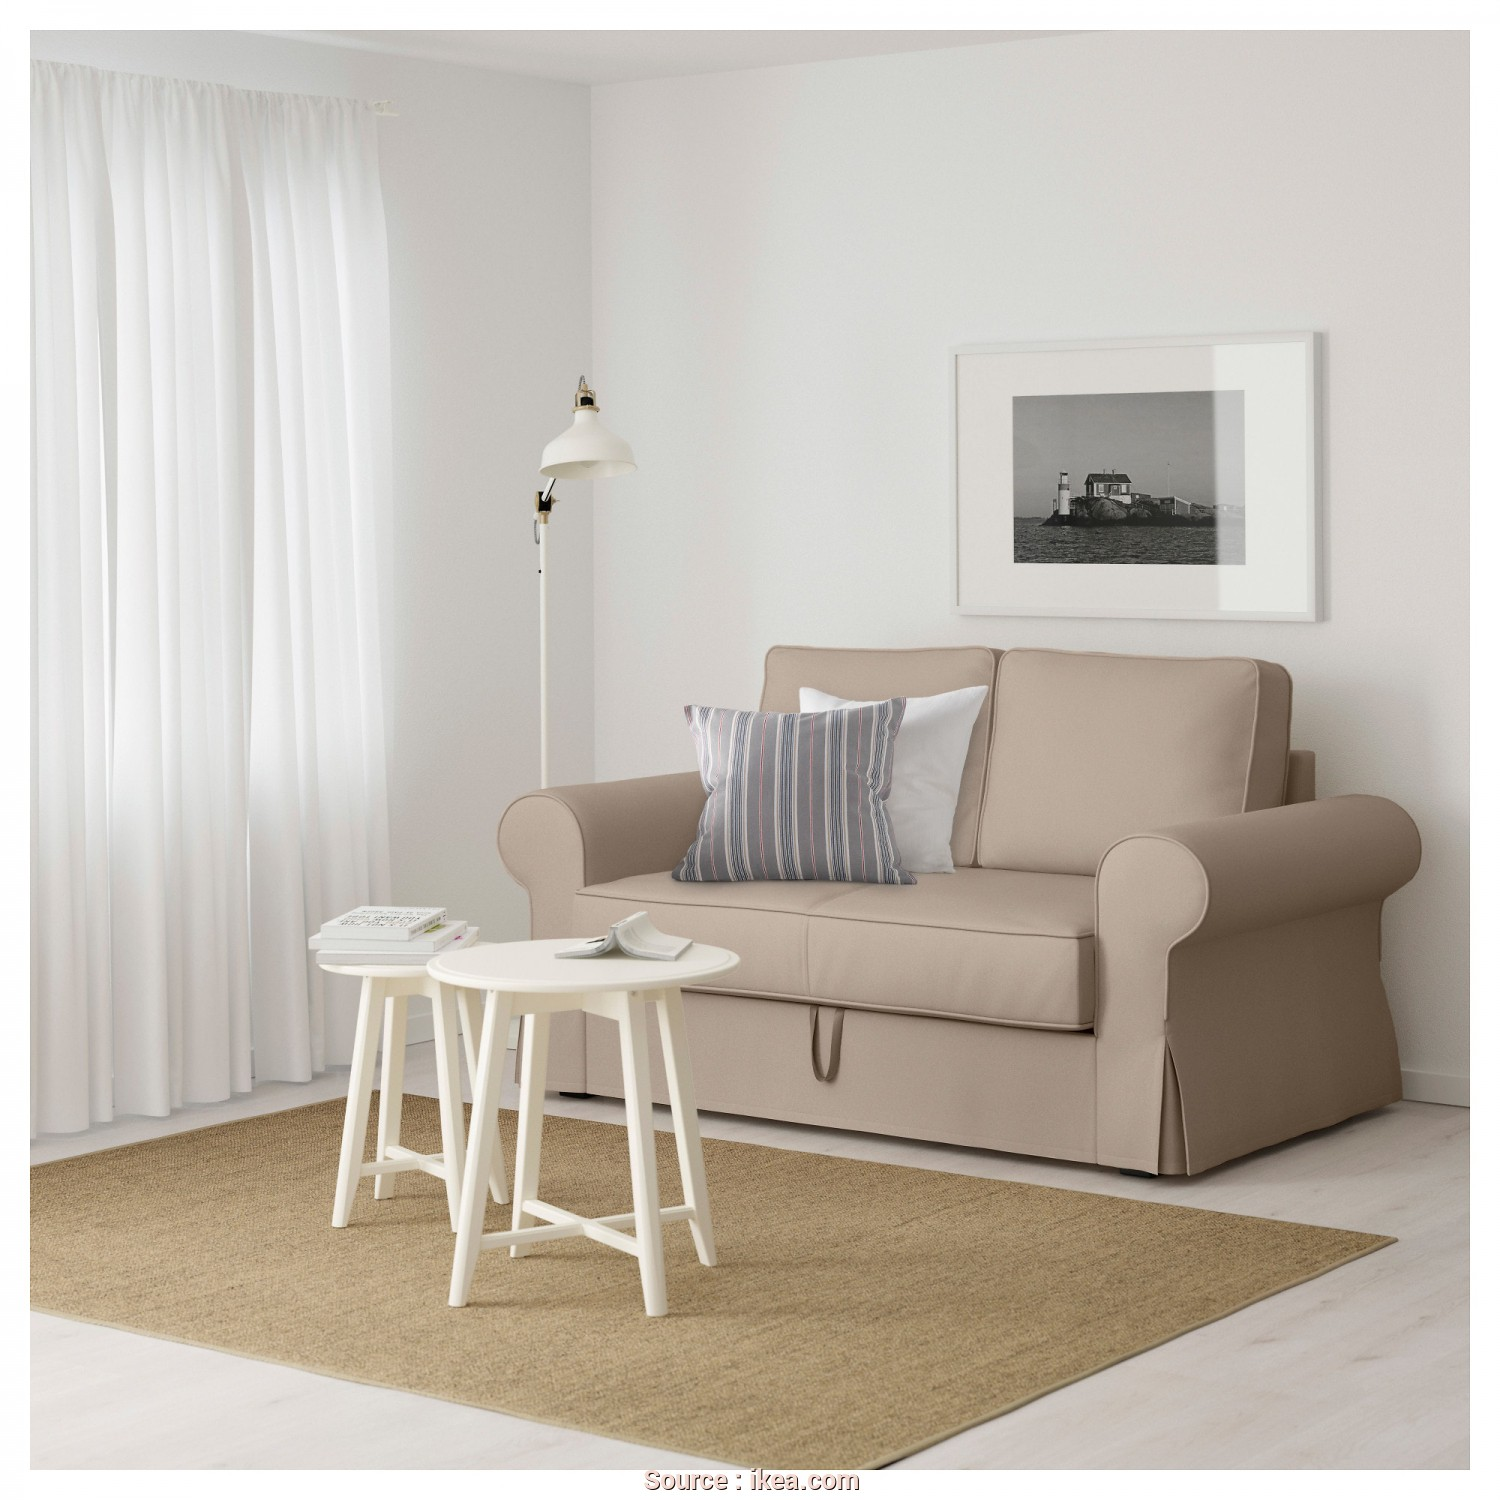 Backabro Ikea Couch, Migliore BACKABRO Two-Seat Sofa-Bed Ramna Beige